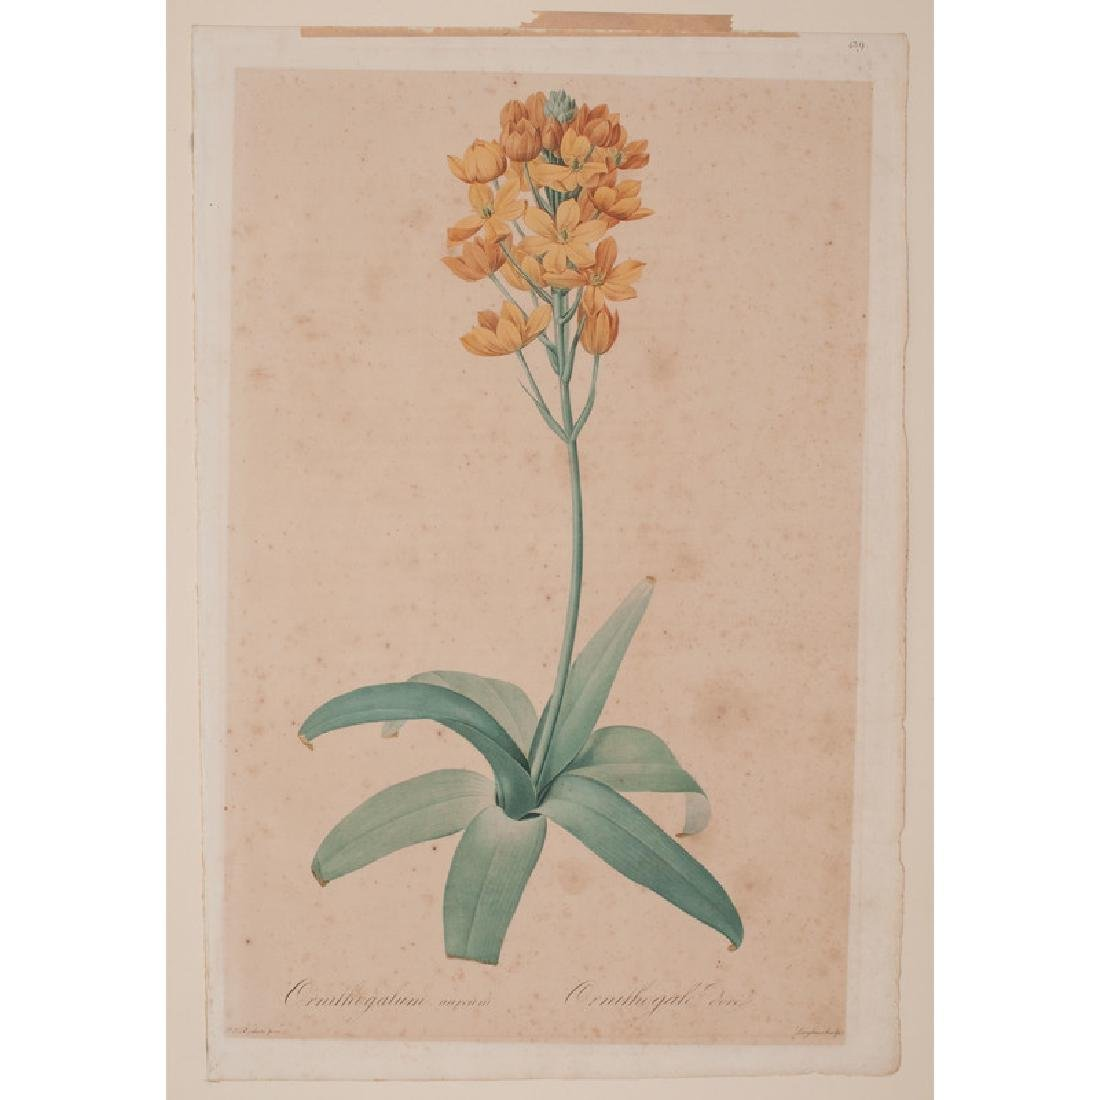 Botanical Hand-Colored Engravings by Pierre-Joseph